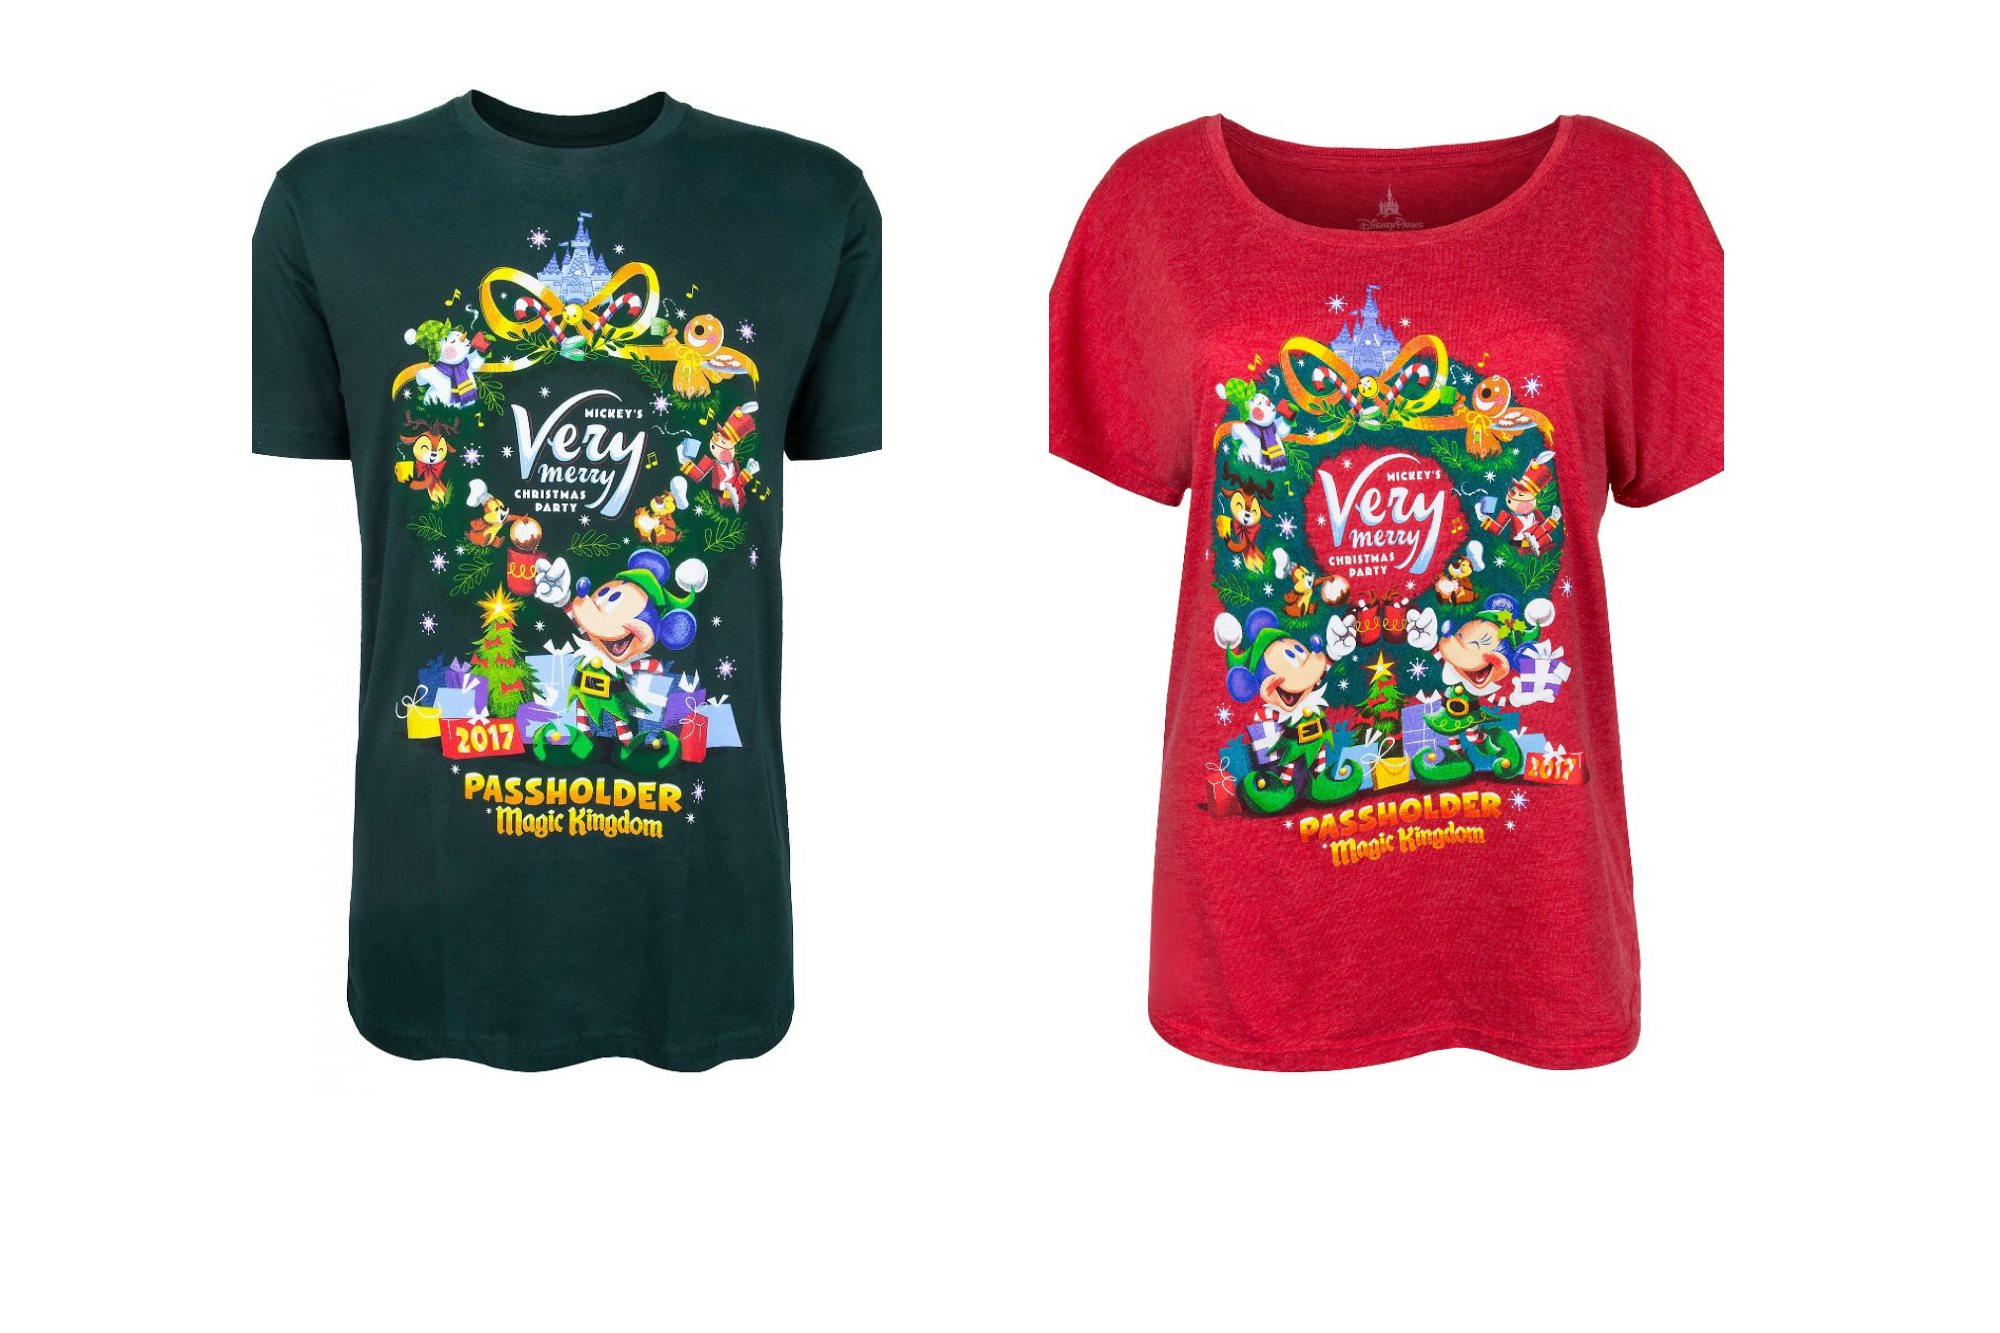 Mickey\'s Very Merry Christmas Party Annual Passholder Shirts Now ...